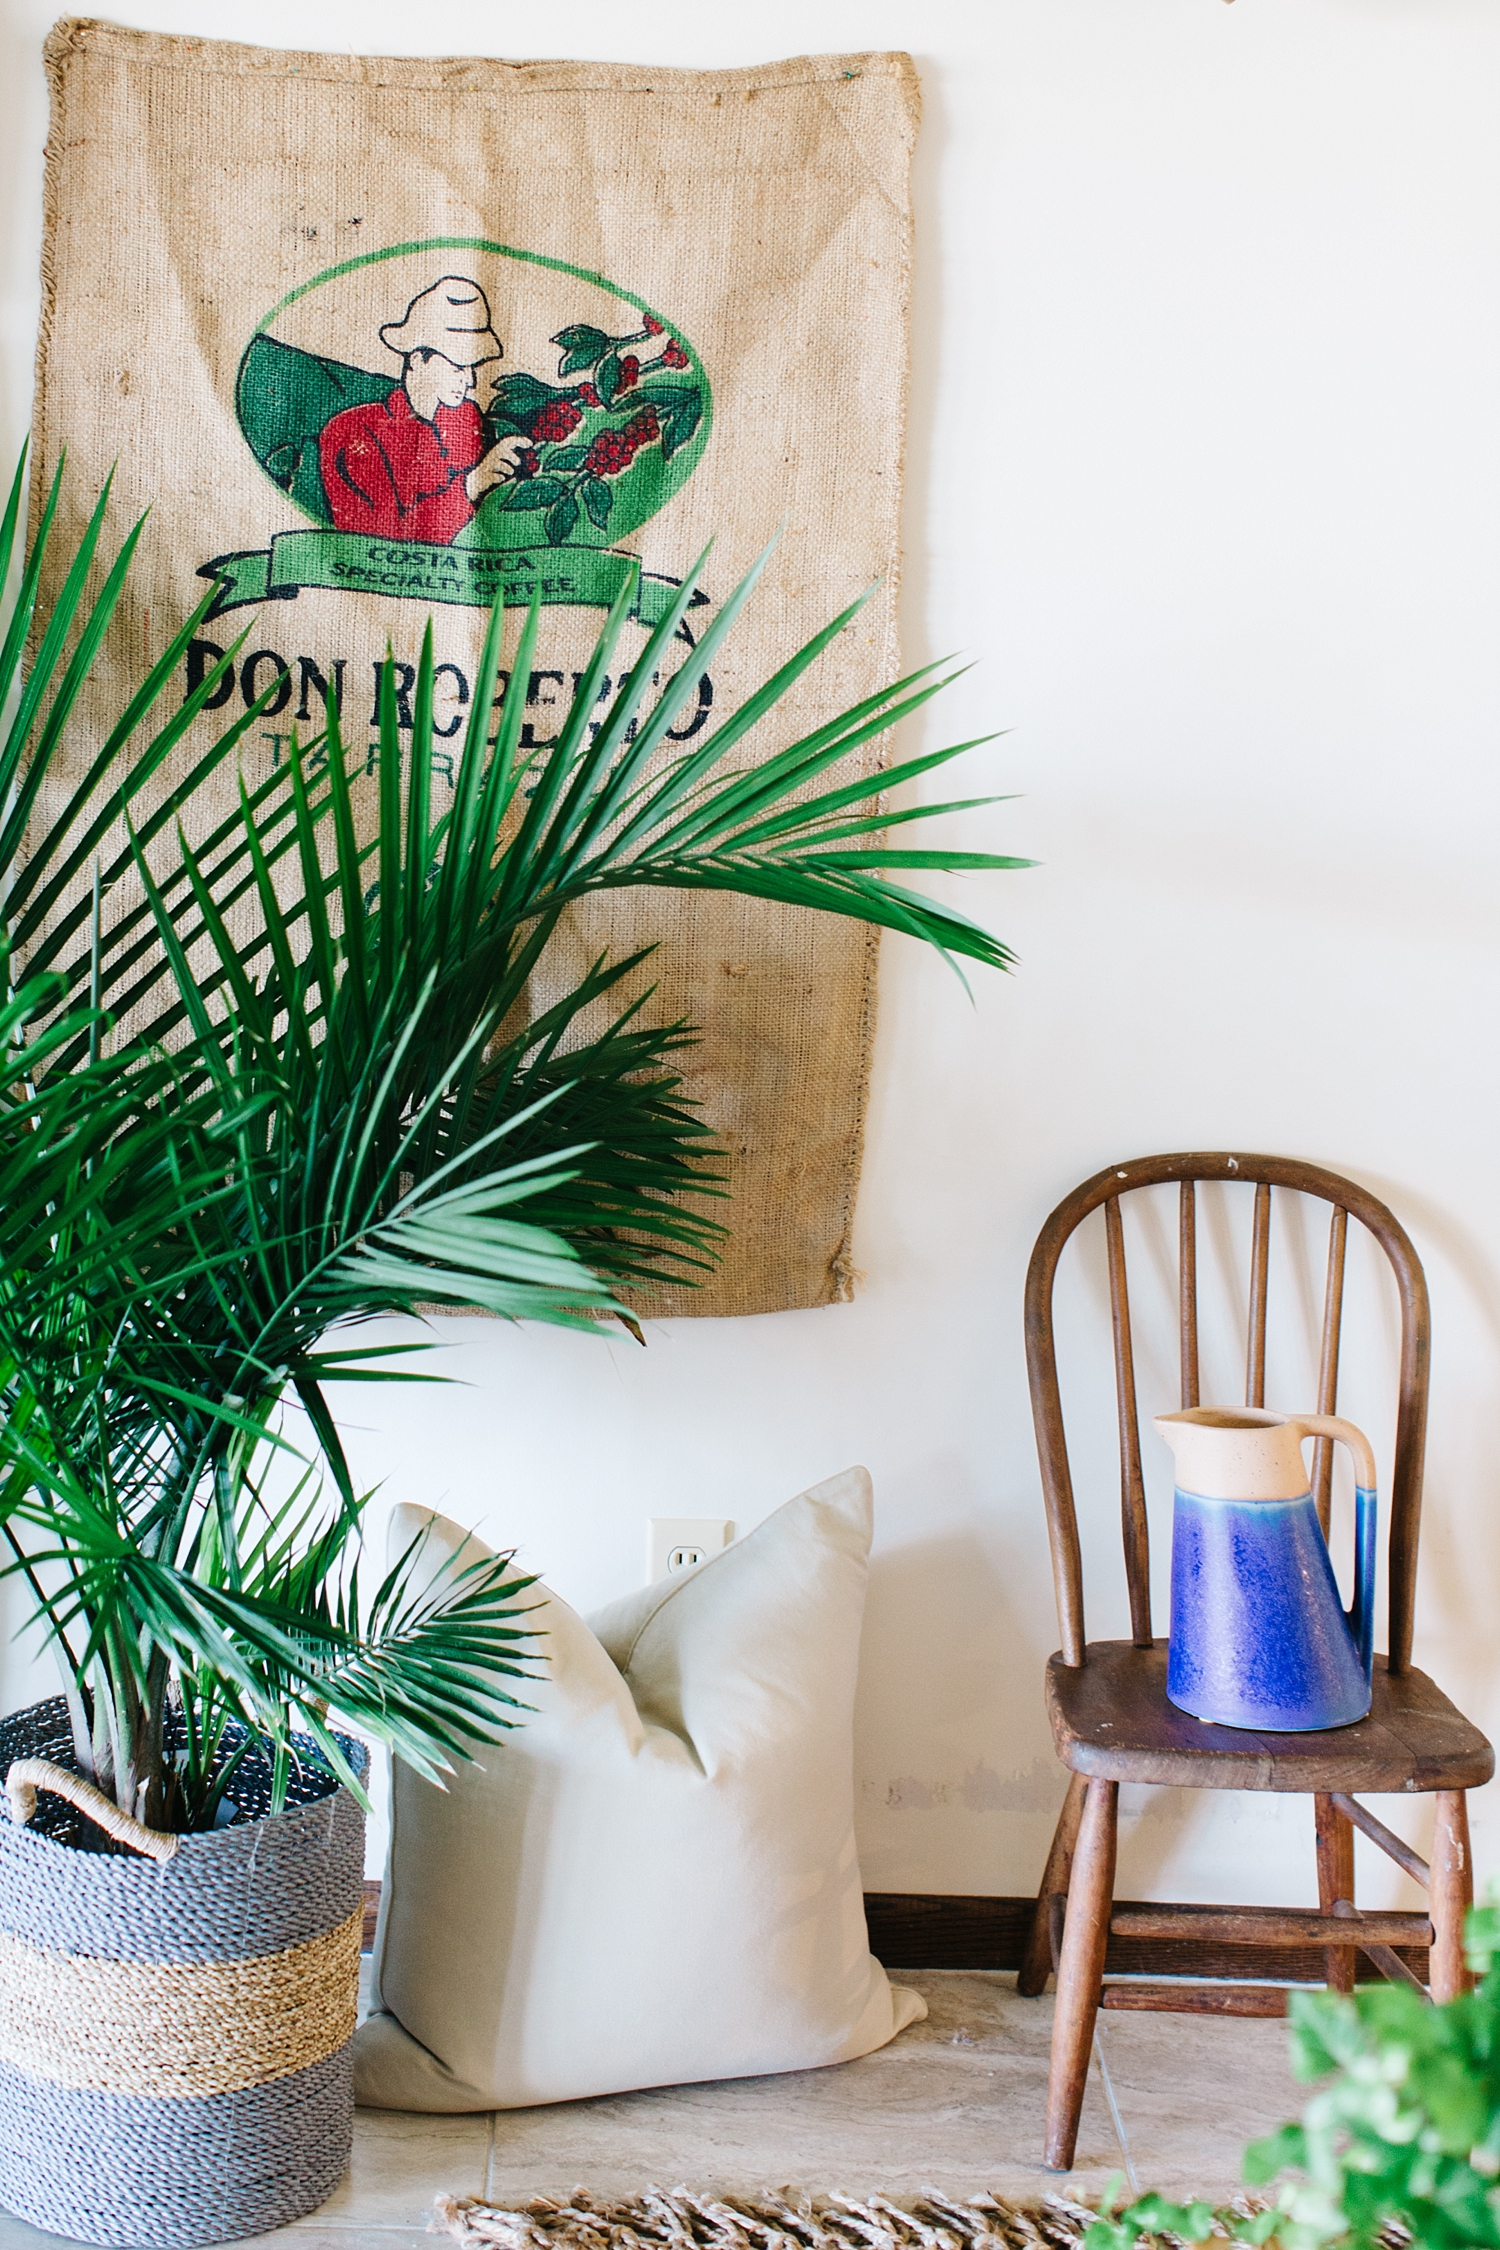 The combination of the burlap coffee bean sack from Costa Rica layered behind the fresh Palm complement the childhood chair. This colorblock clay pitcher is always ready with water to make taking care of the houseplants easy.